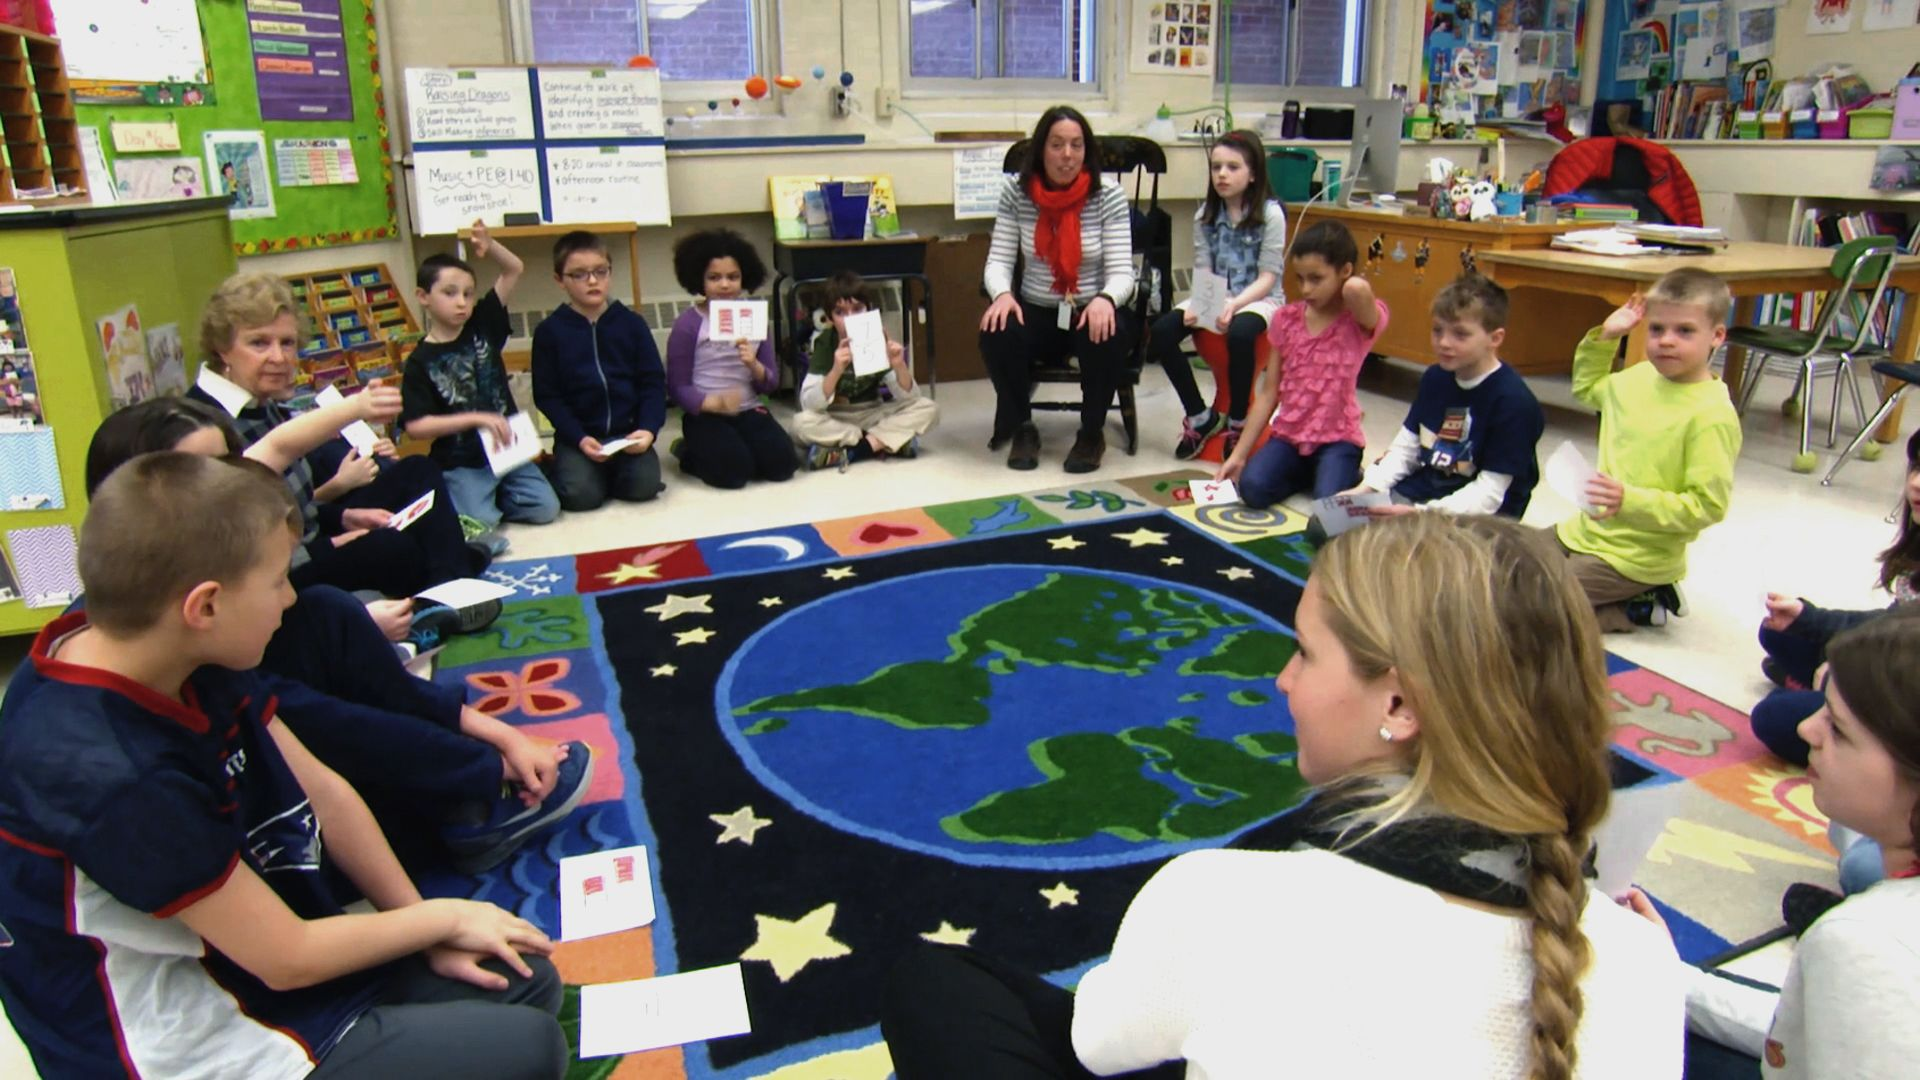 Students and teachers sitting on the classroom floor talking to each other.